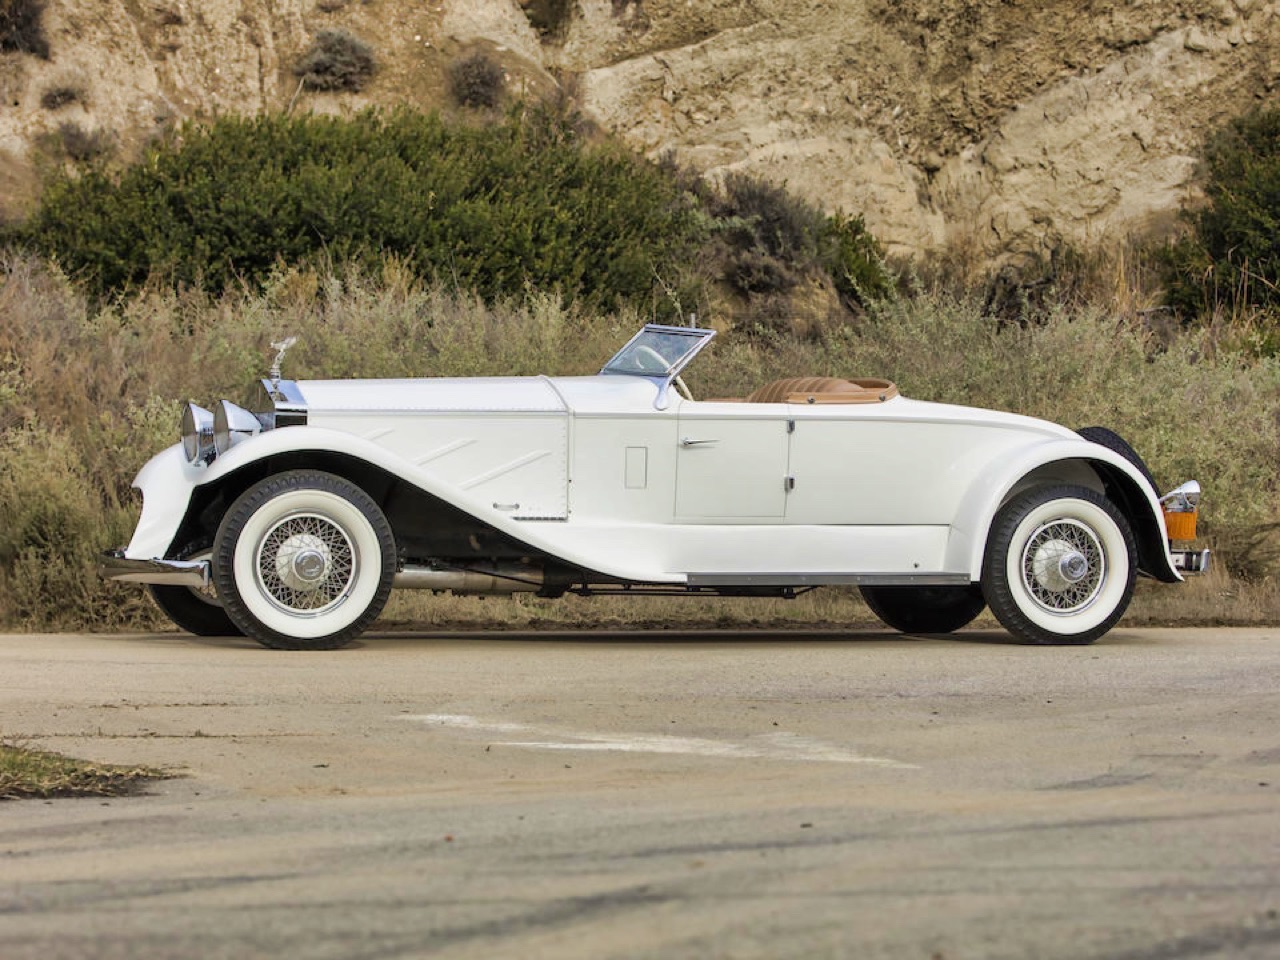 '24 Rolls Royce Silver Ghost Picadilly Special Roadster - Made in America ! 15